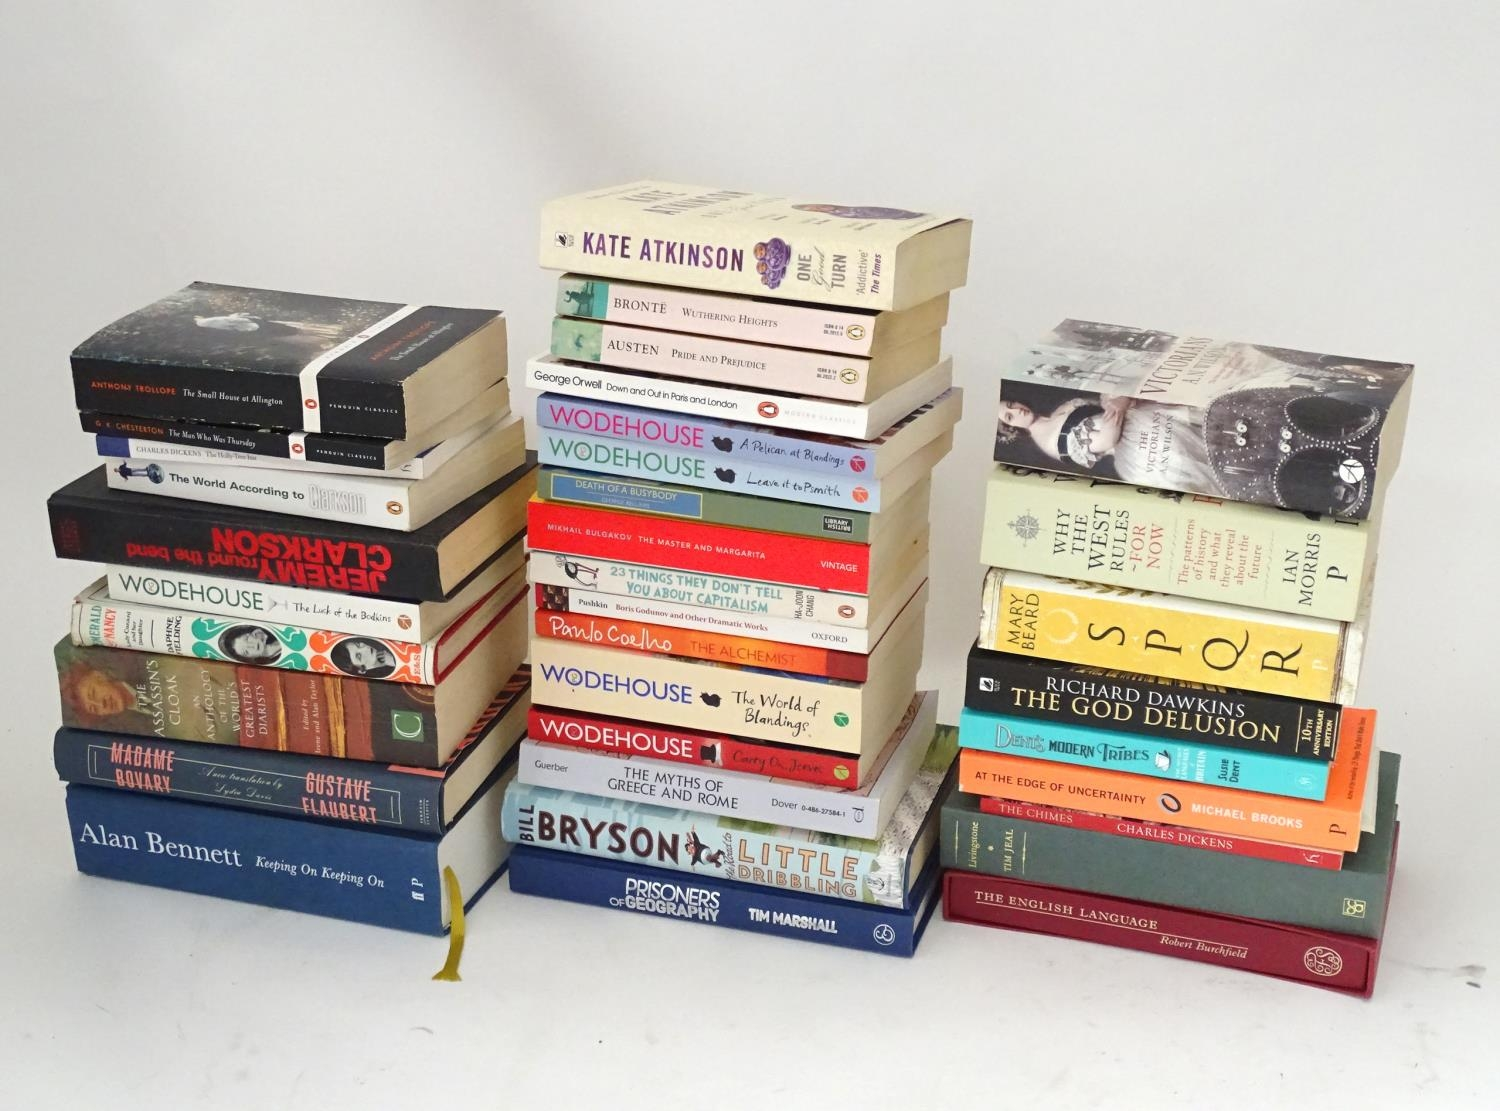 A quantity of books to include titles by Alan Bennett, Jeremy Clarkson, Bill Bryson, Anthony